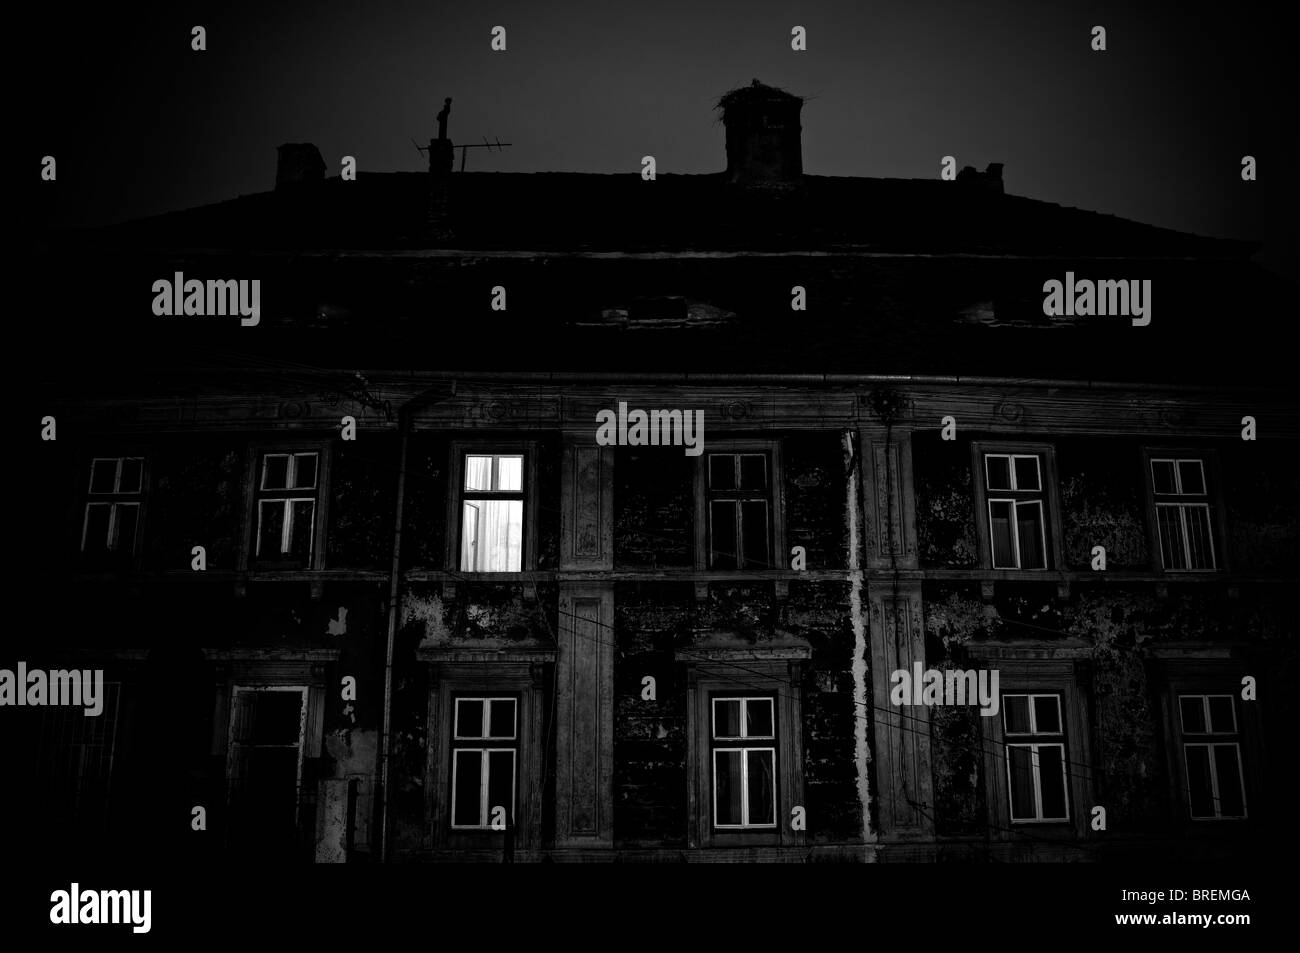 sinister stockfotos sinister bilder alamy. Black Bedroom Furniture Sets. Home Design Ideas